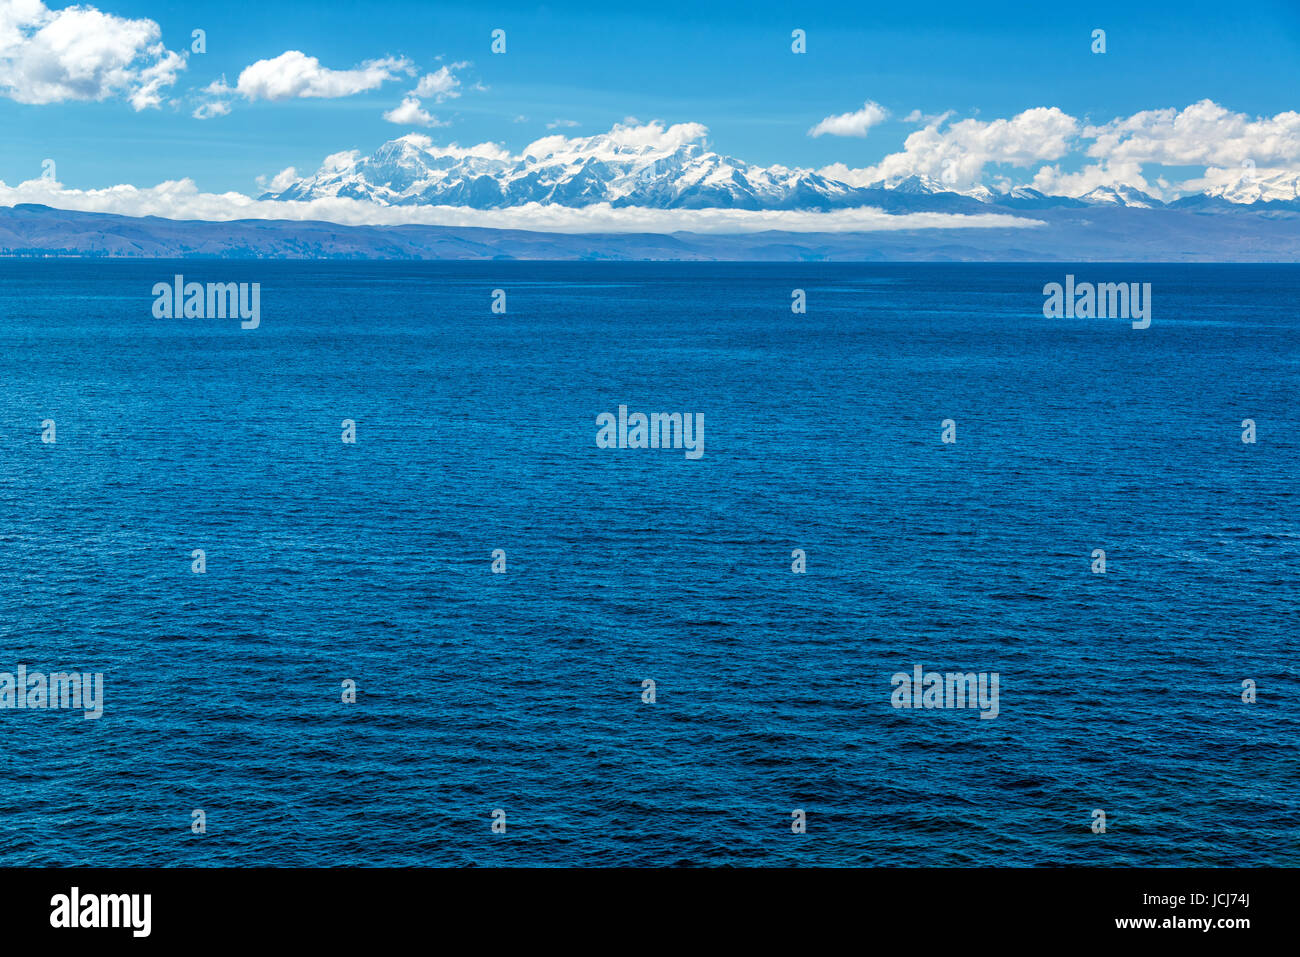 View of the Andes mountains with the deep blue of Lake Titicaca in the foreground - Stock Image